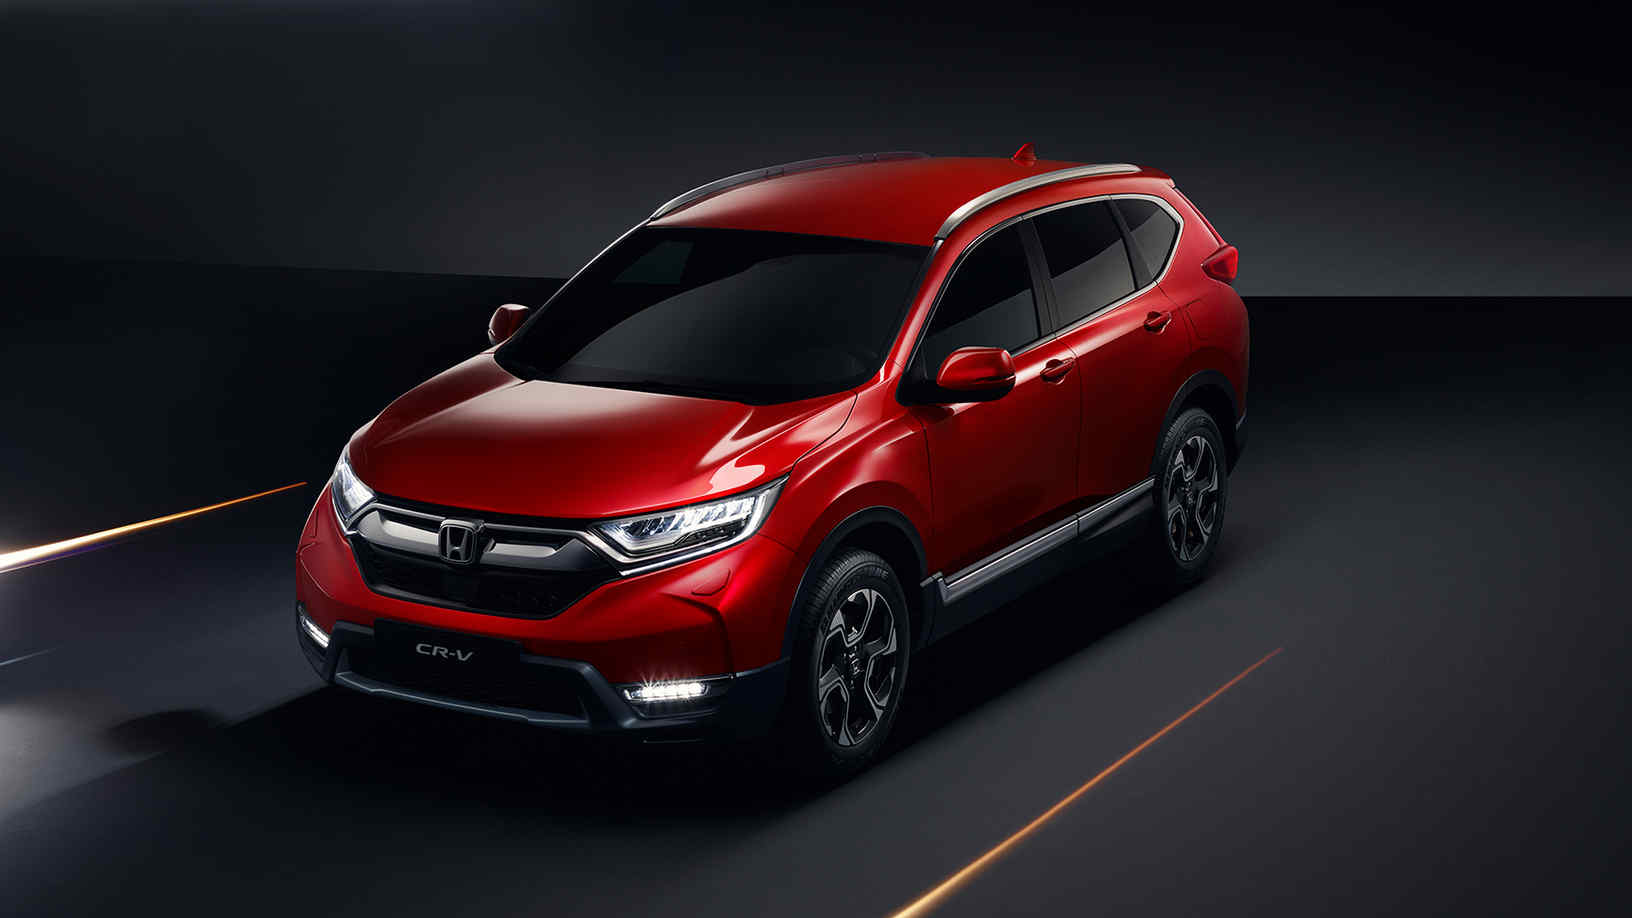 The All New CR-V - redesigned and re-engineered from the ground up